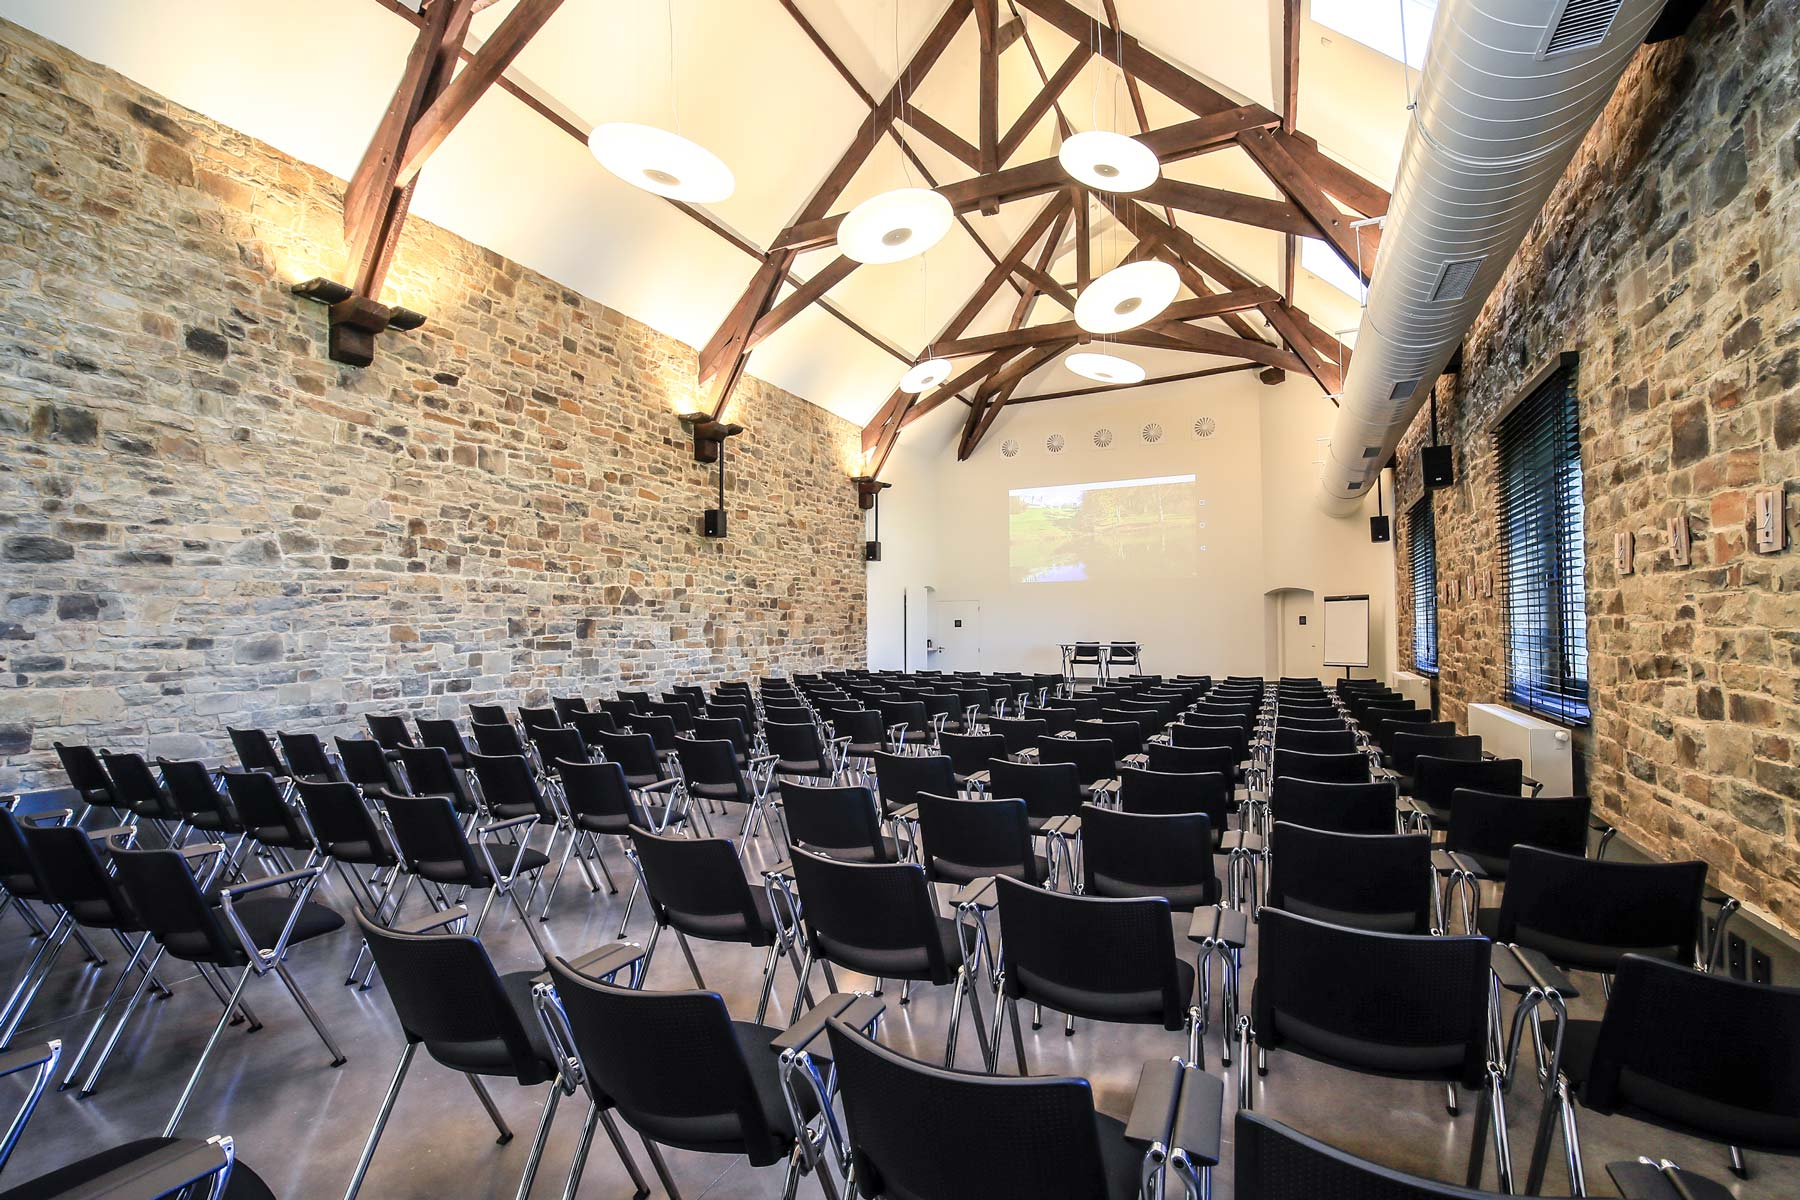 domaine-de-ronchinne-evenements-meetings-professionnels-conferences-02.jpg